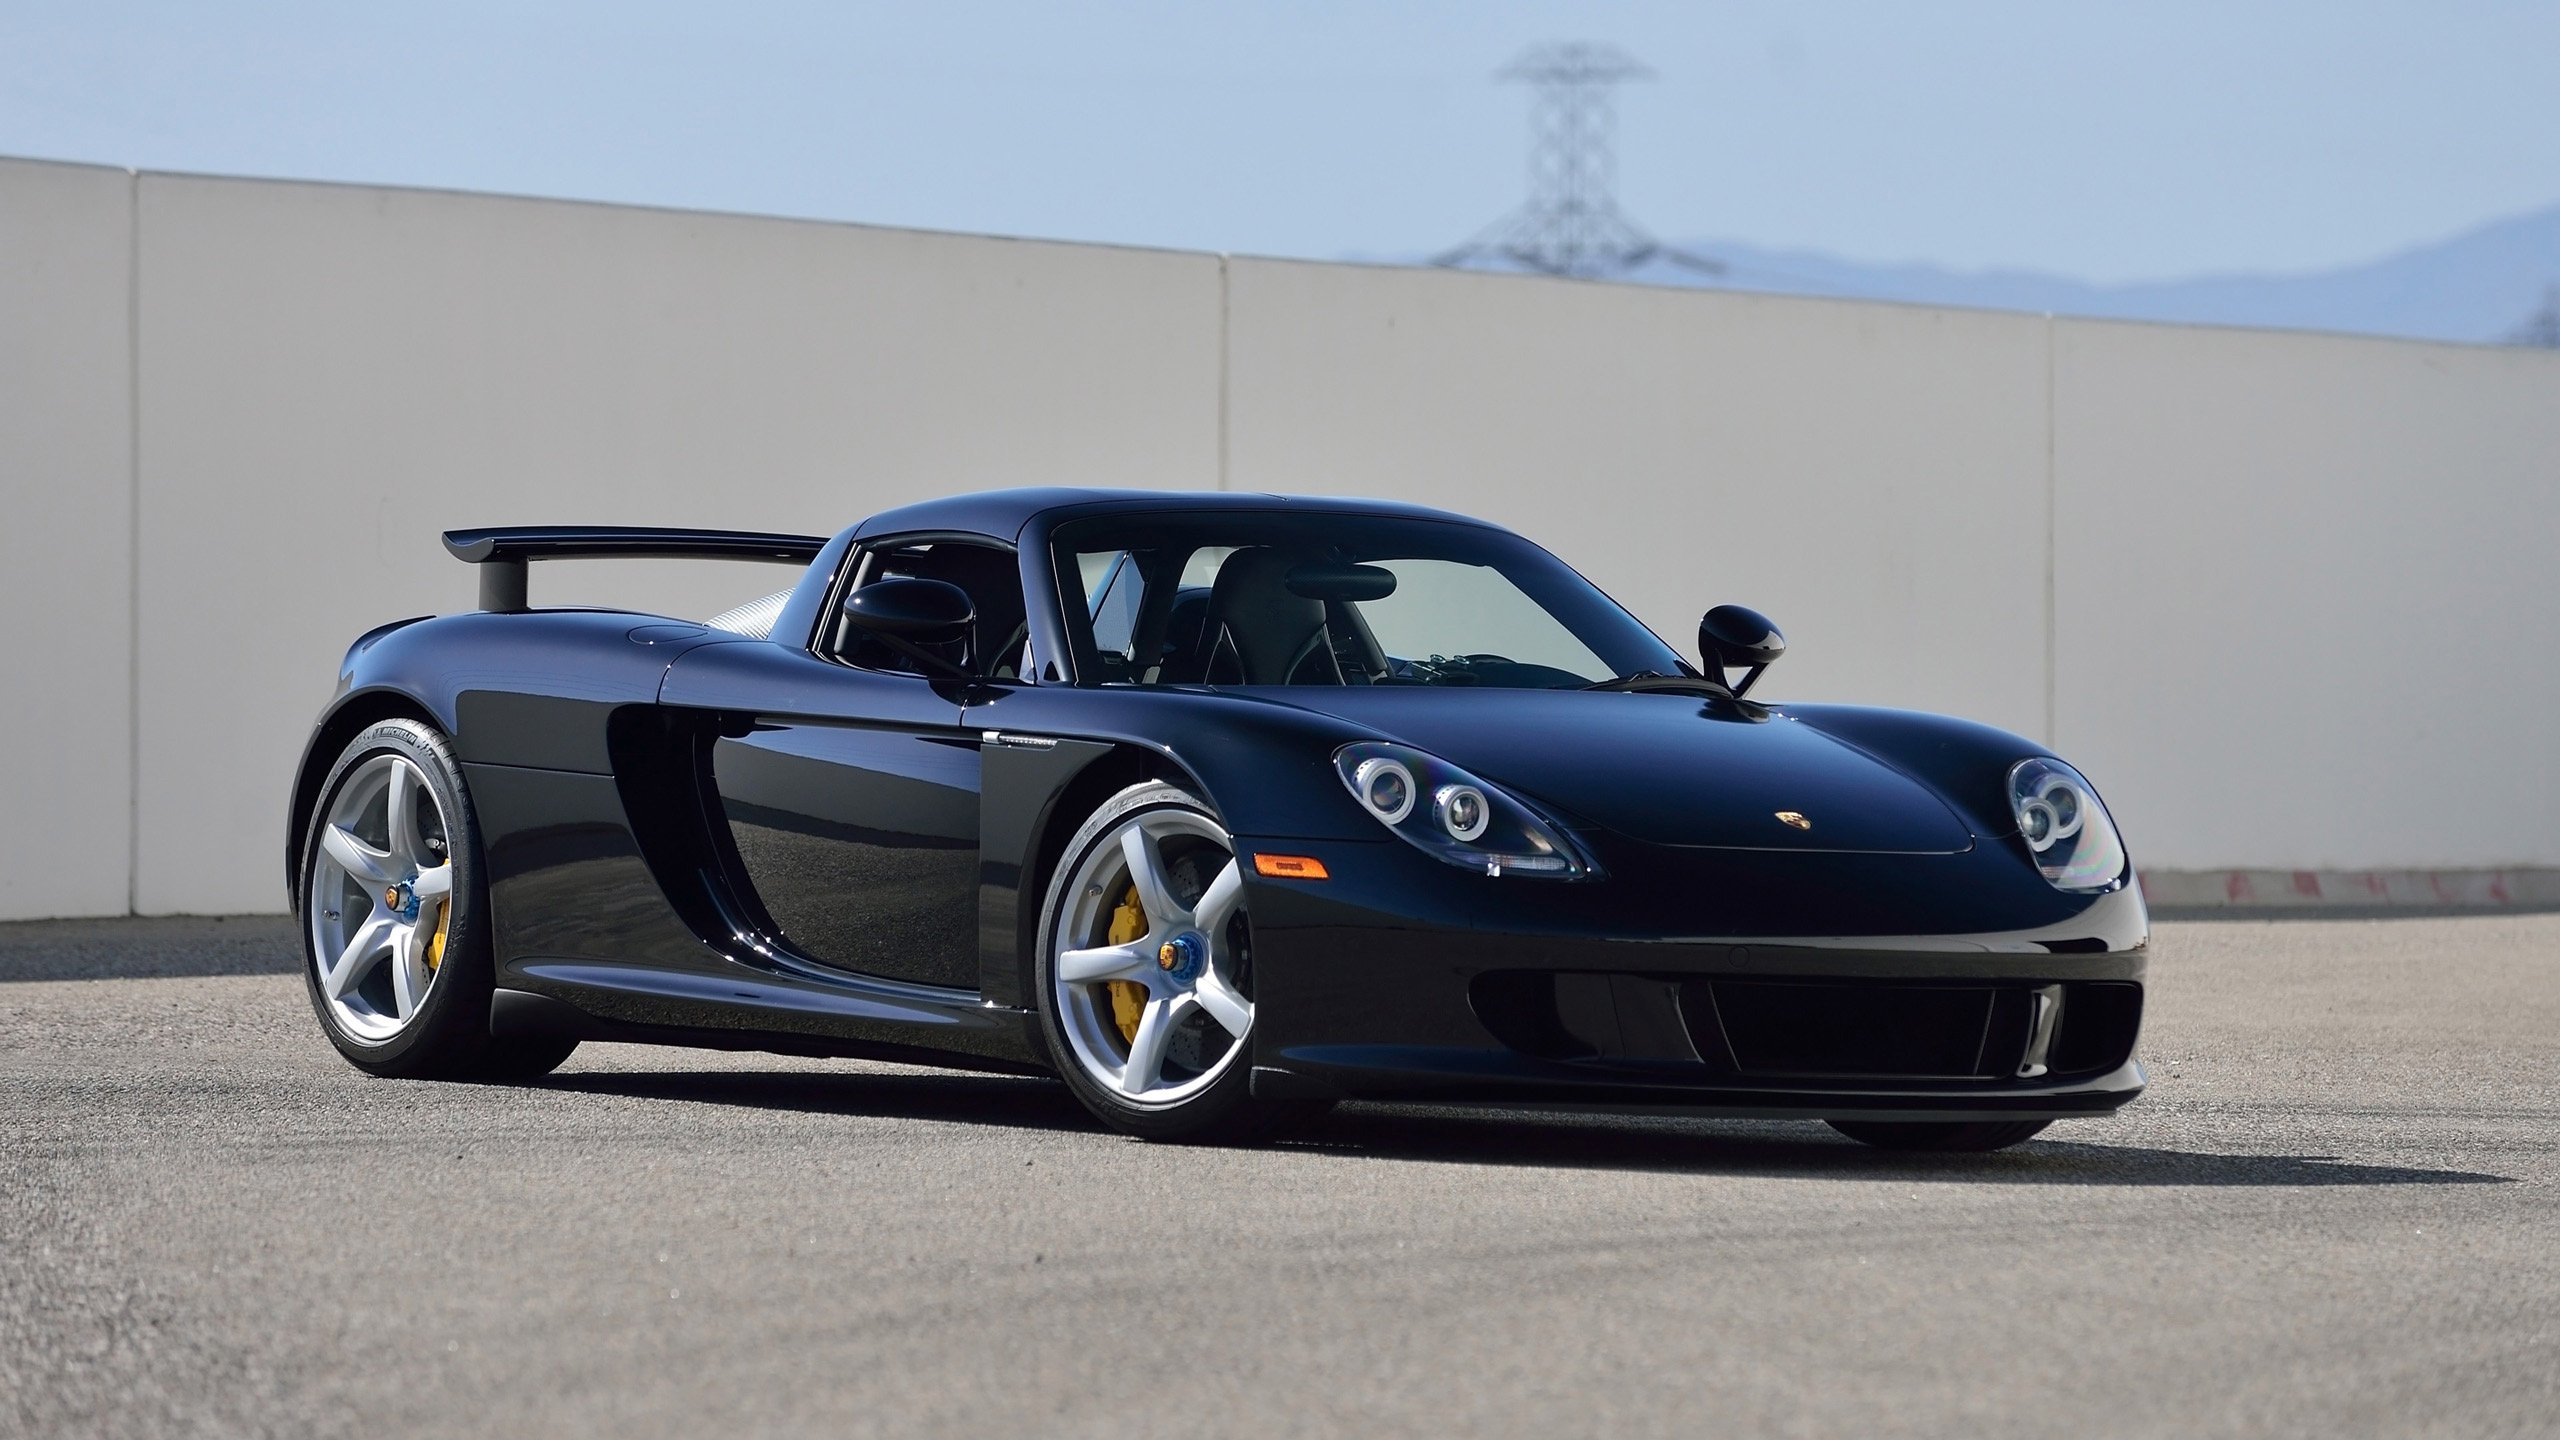 Bugatti Hd Wallpapers Free Download 2005 Porsche Carrera Gt Basalt Wallpaper Hd Car